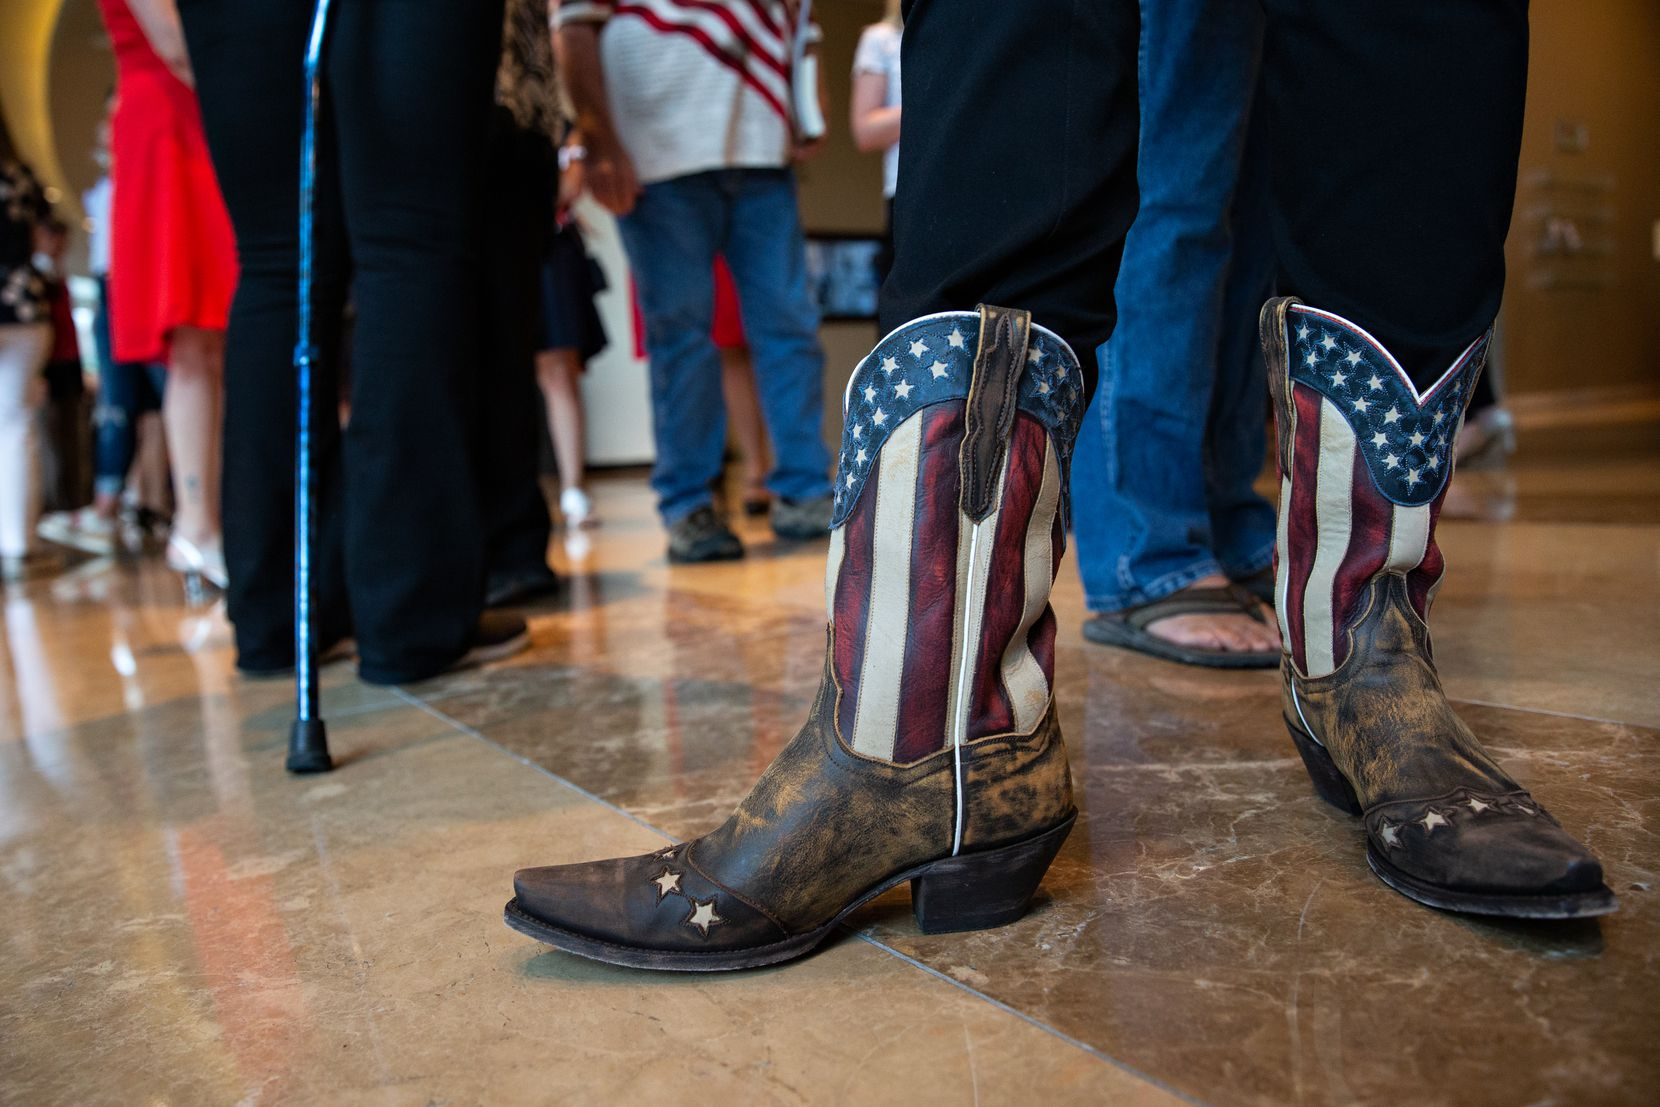 Karmen Siirtola donned patriotic boots for opening night of the conference at the Omni Dallas Hotel.